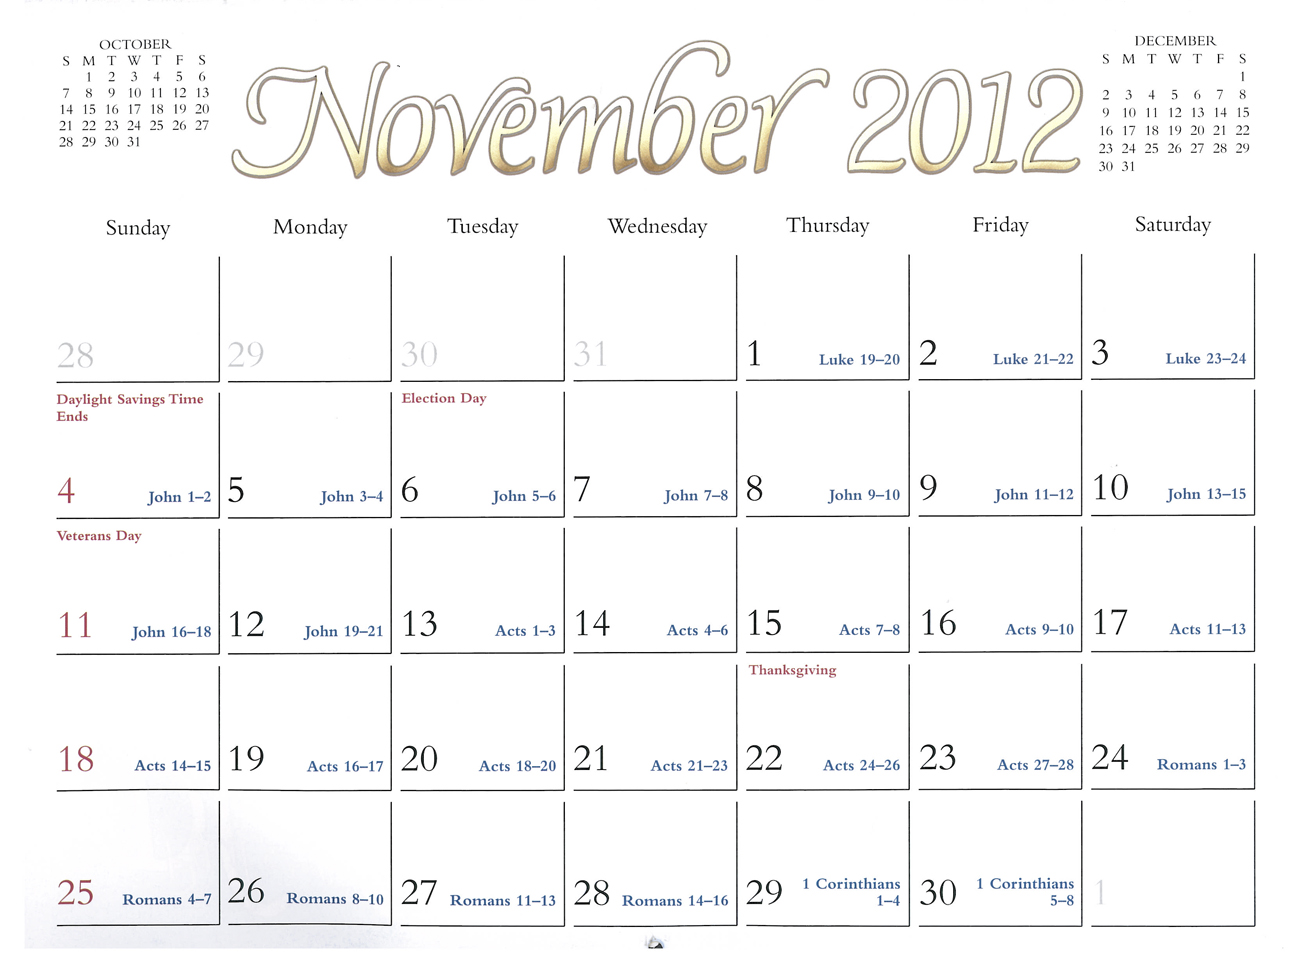 2012 Prophecy Calendar: November - Paul's Letter to Titus